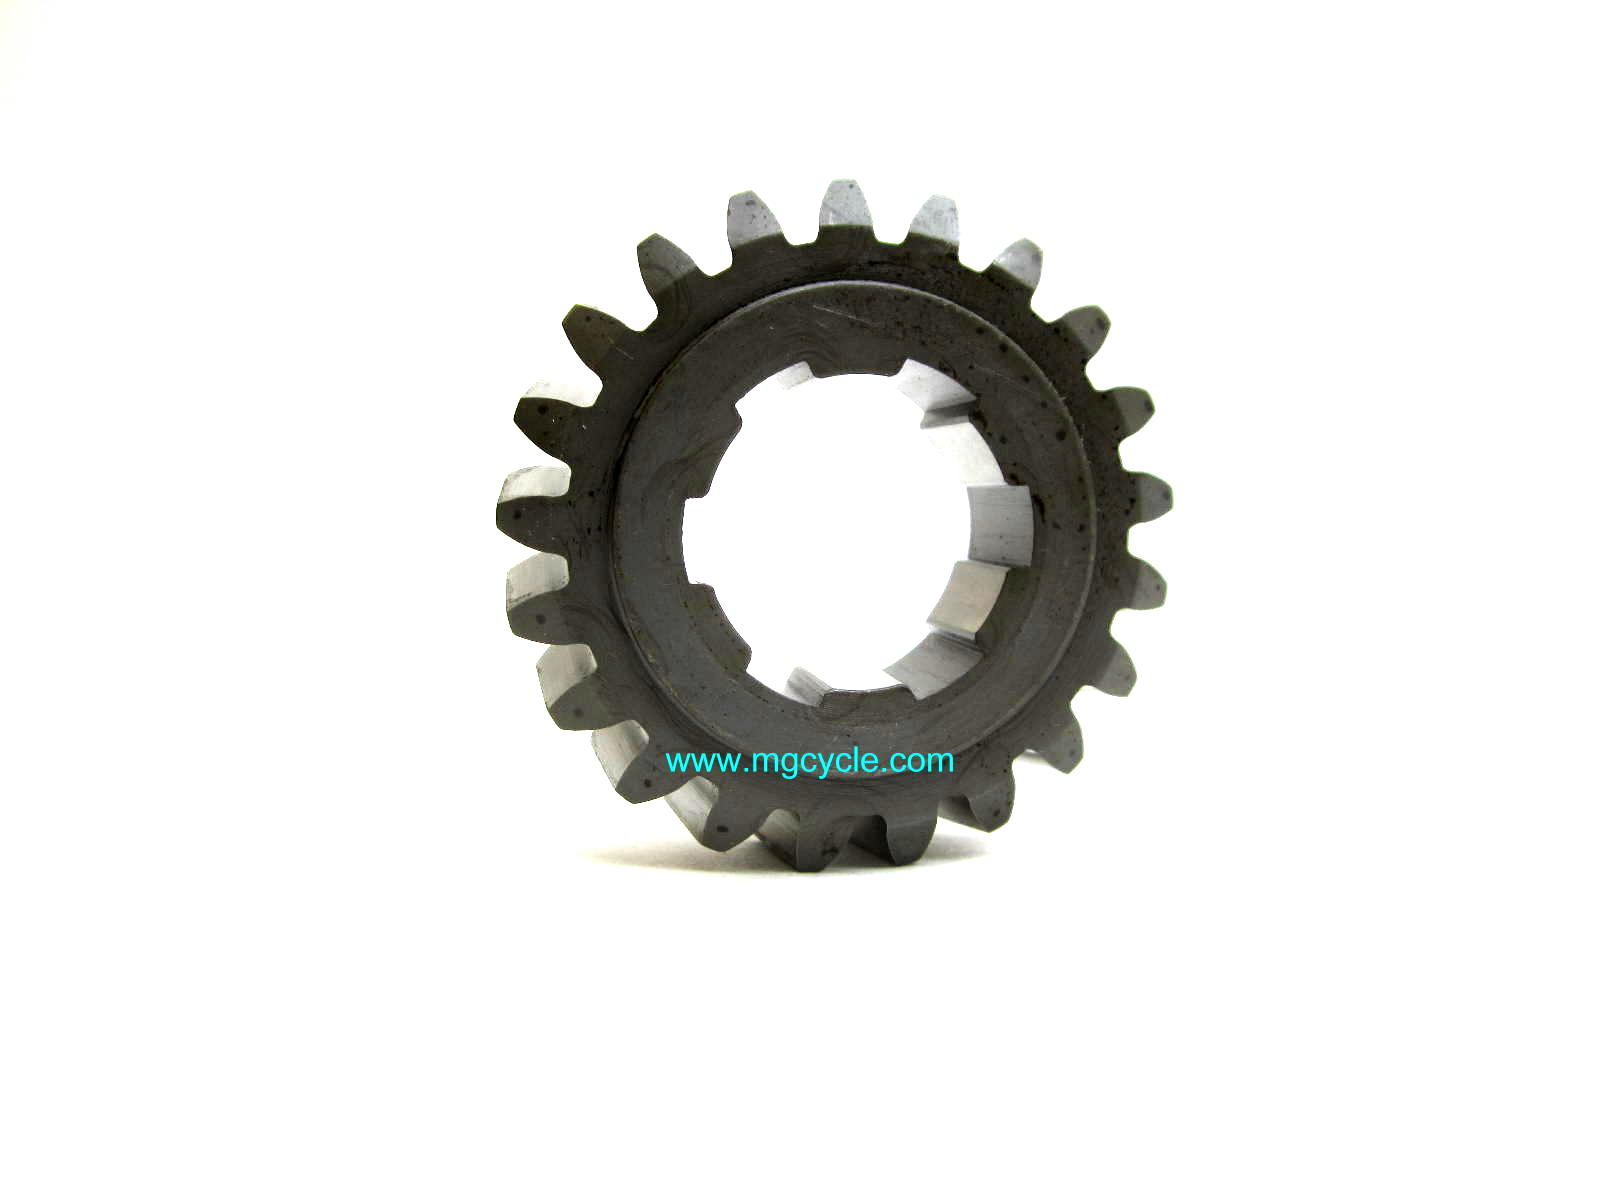 5th gear, 21 tooth GU14215213 - Click Image to Close